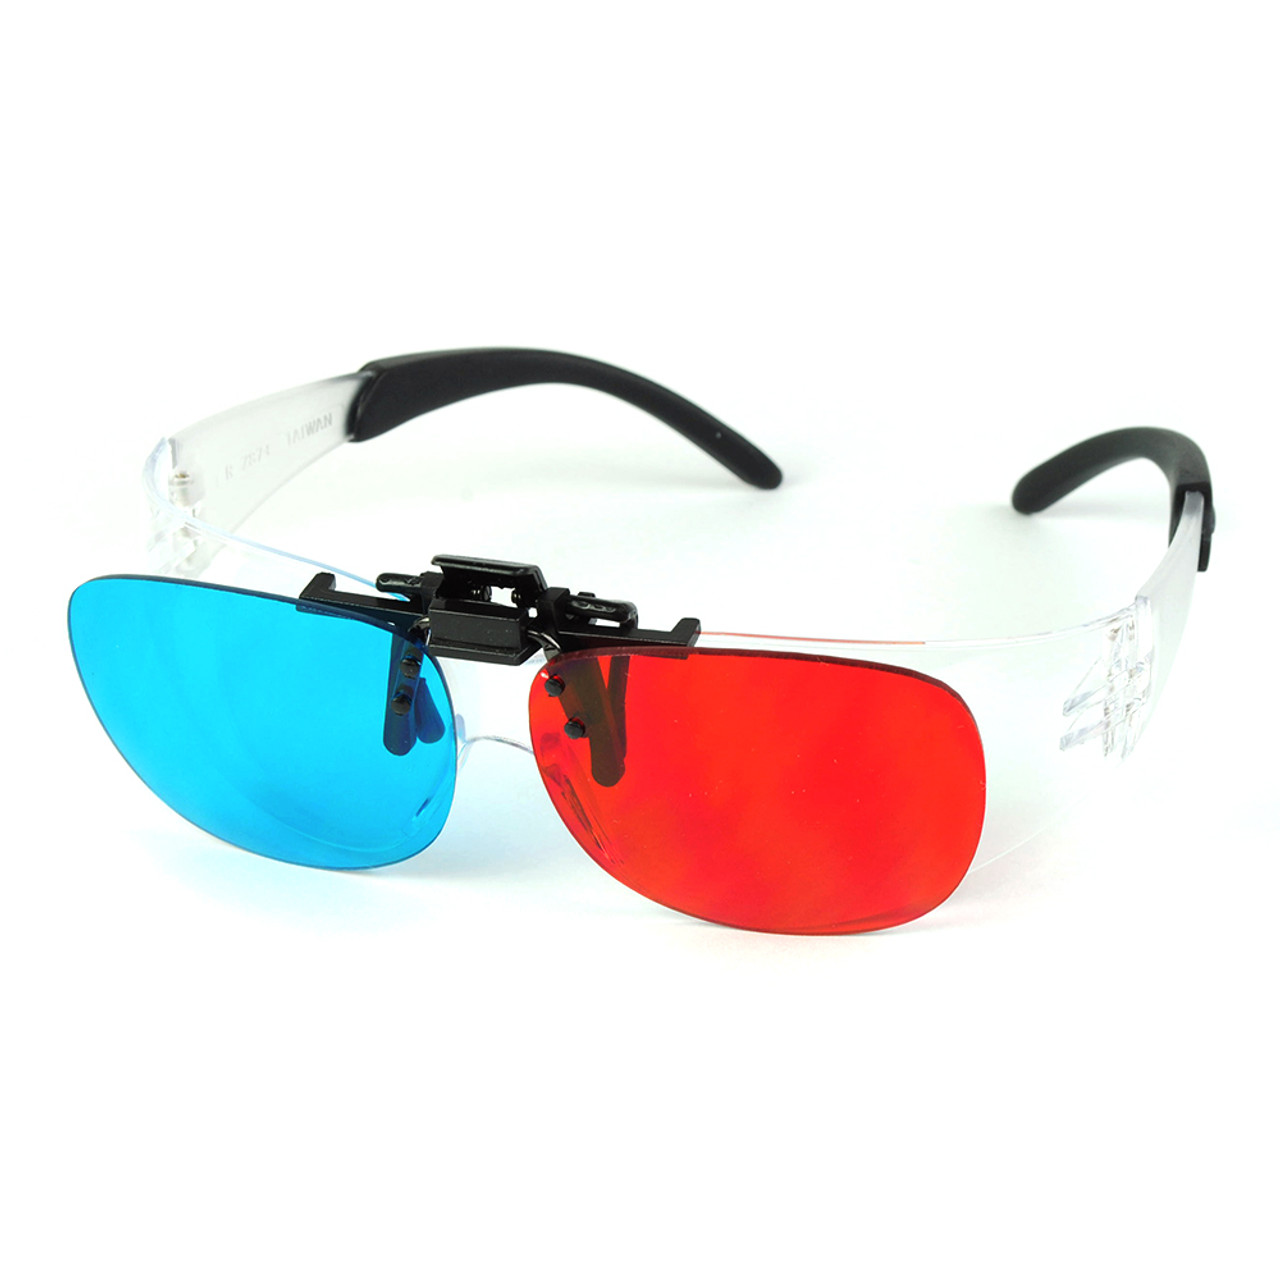 826b503b800 Thompson Target High Definition Red Cyan Clip On 3D Glasses